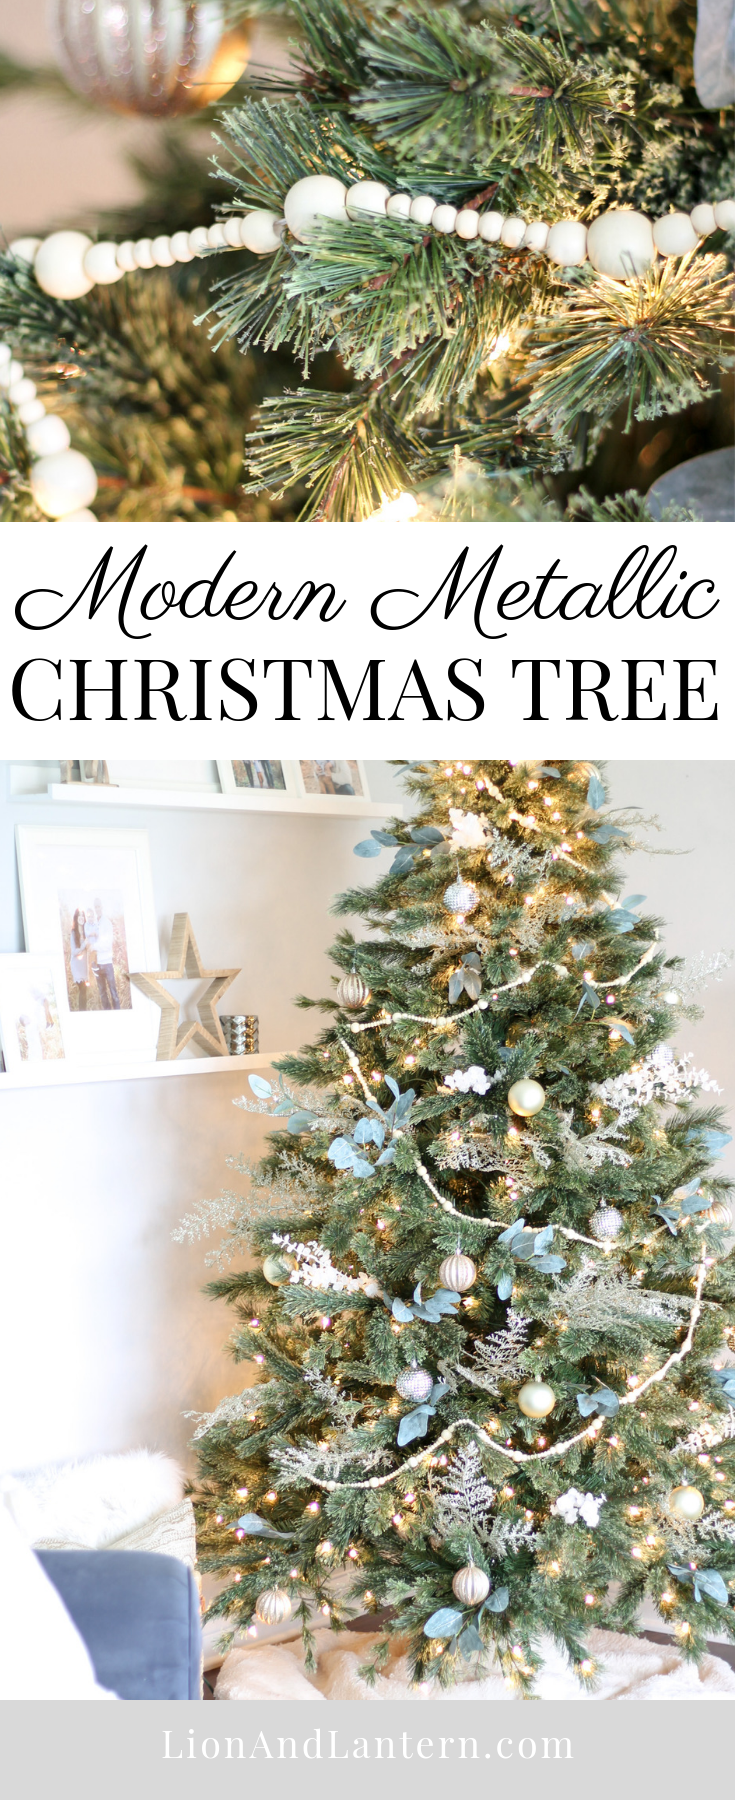 Modern Metallic Christmas Tree at LionAndLantern.com | minimalist Christmas, Scandi, bead garland, eucalyptus, cashmere tree, modern Christmas decor